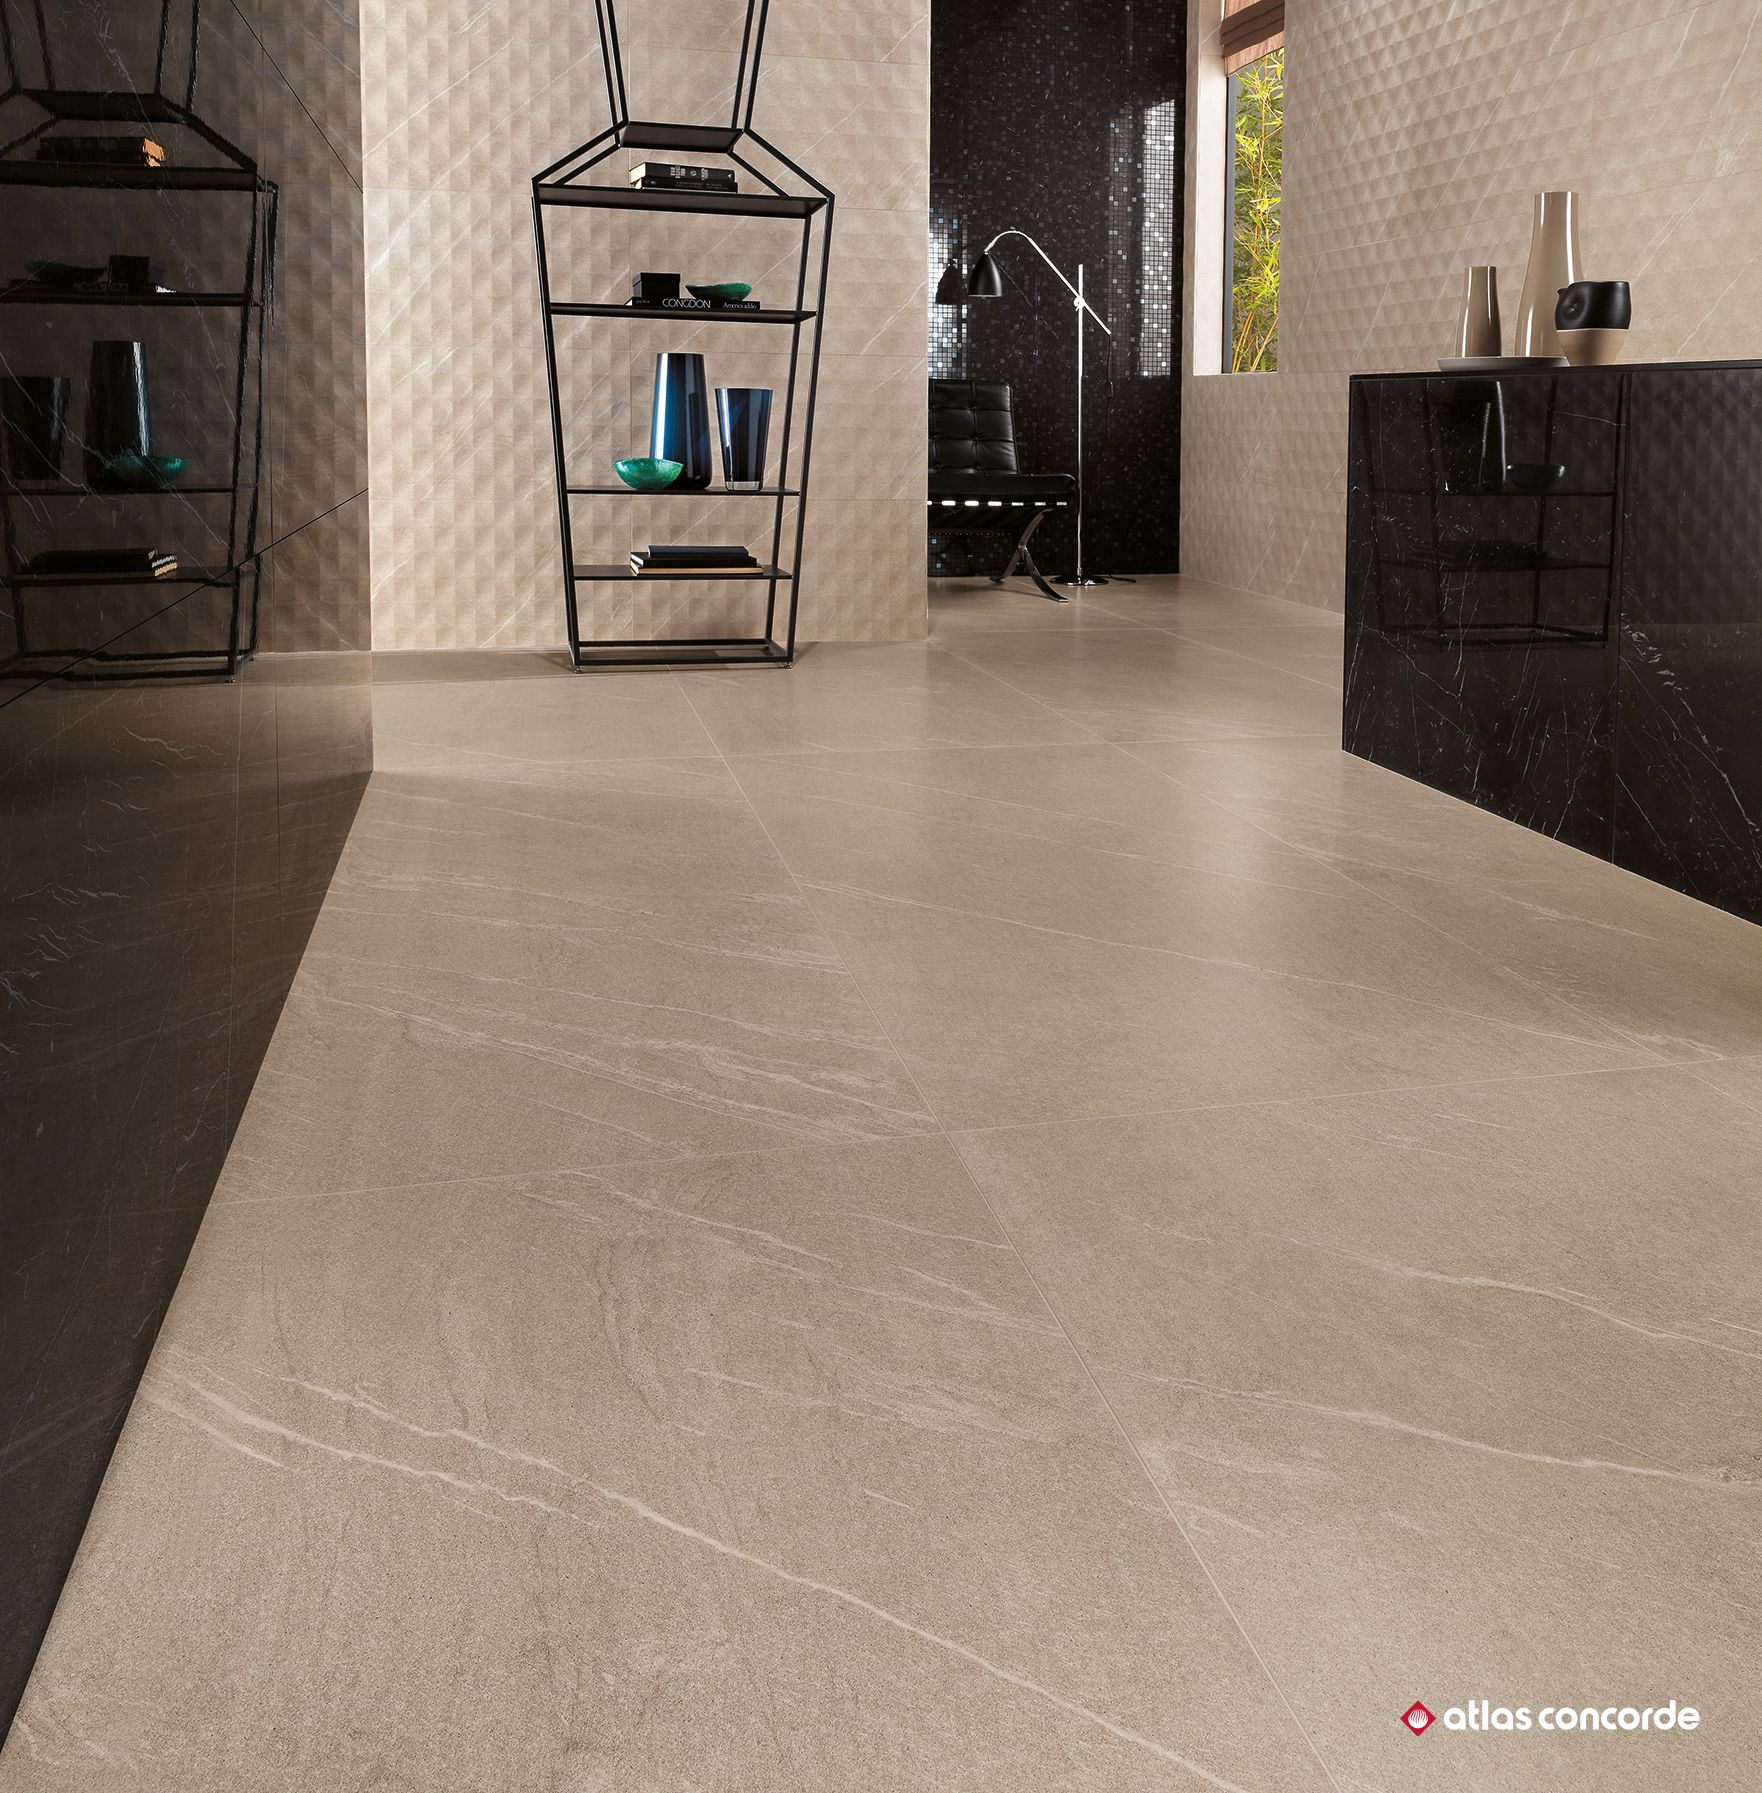 walls and floors inspired by stone with